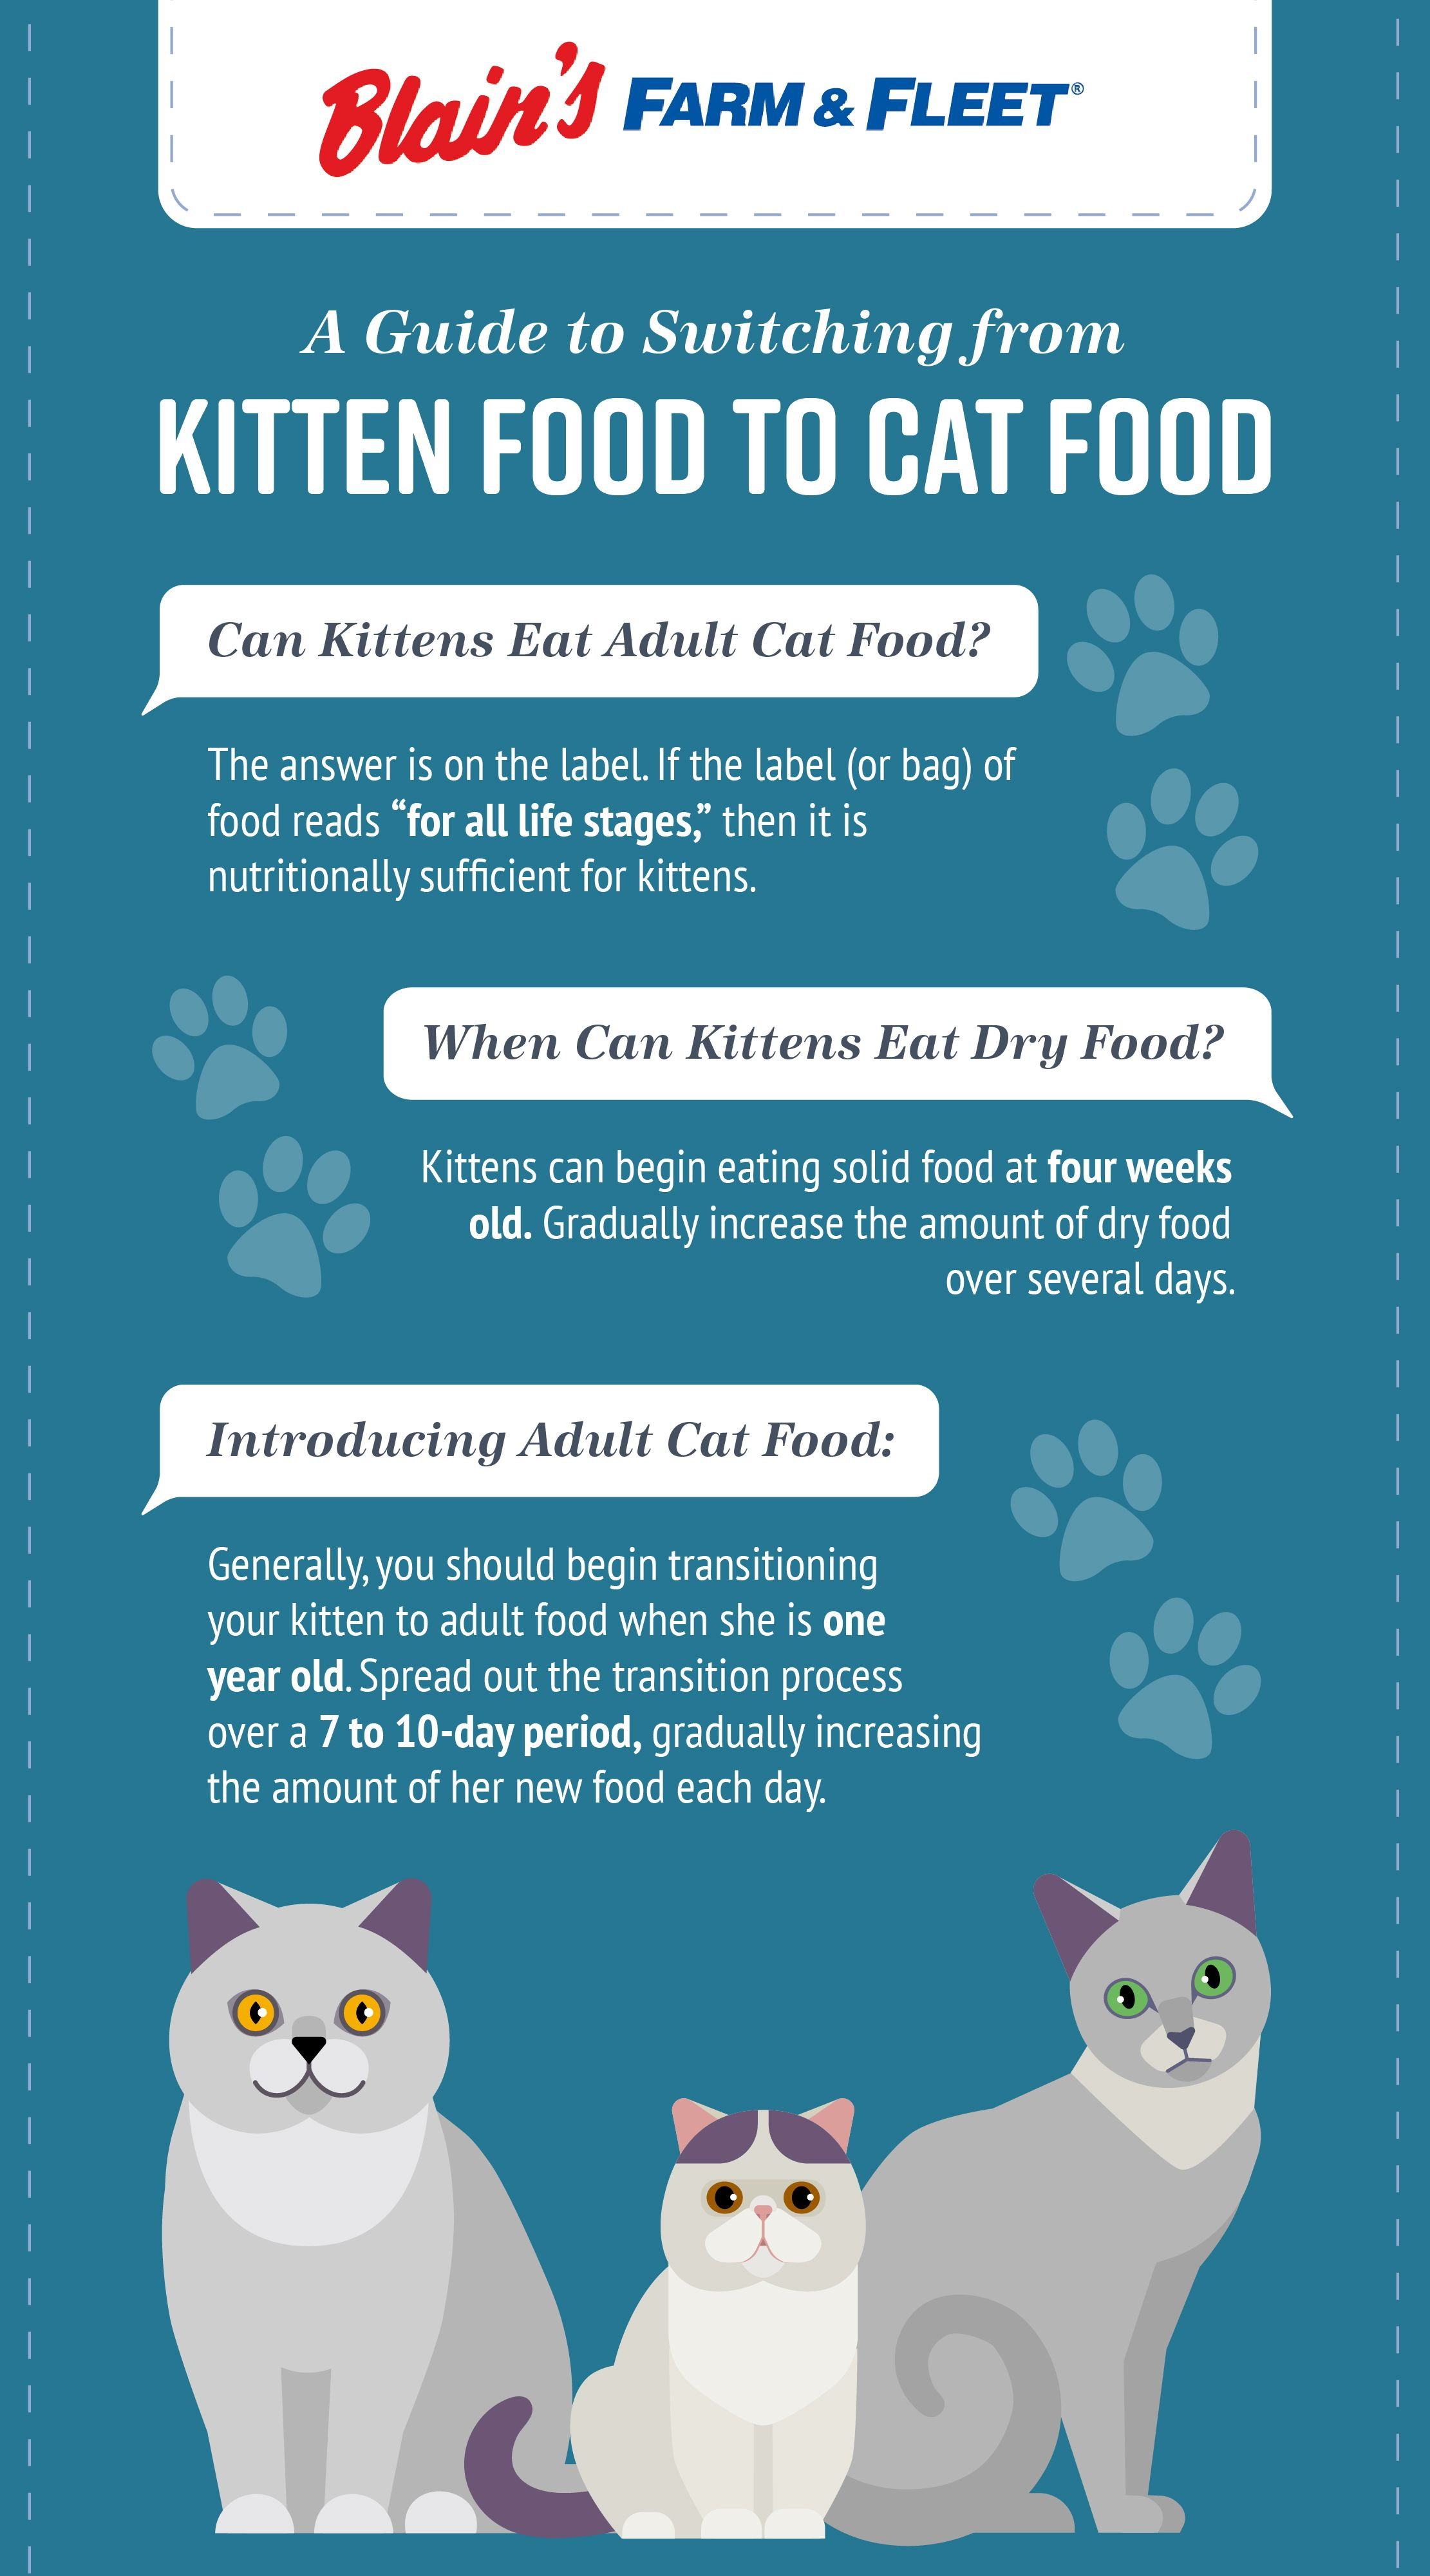 When To Switch From Kitten Food To Cat Food Kitten Food Kitten Formula Kittens